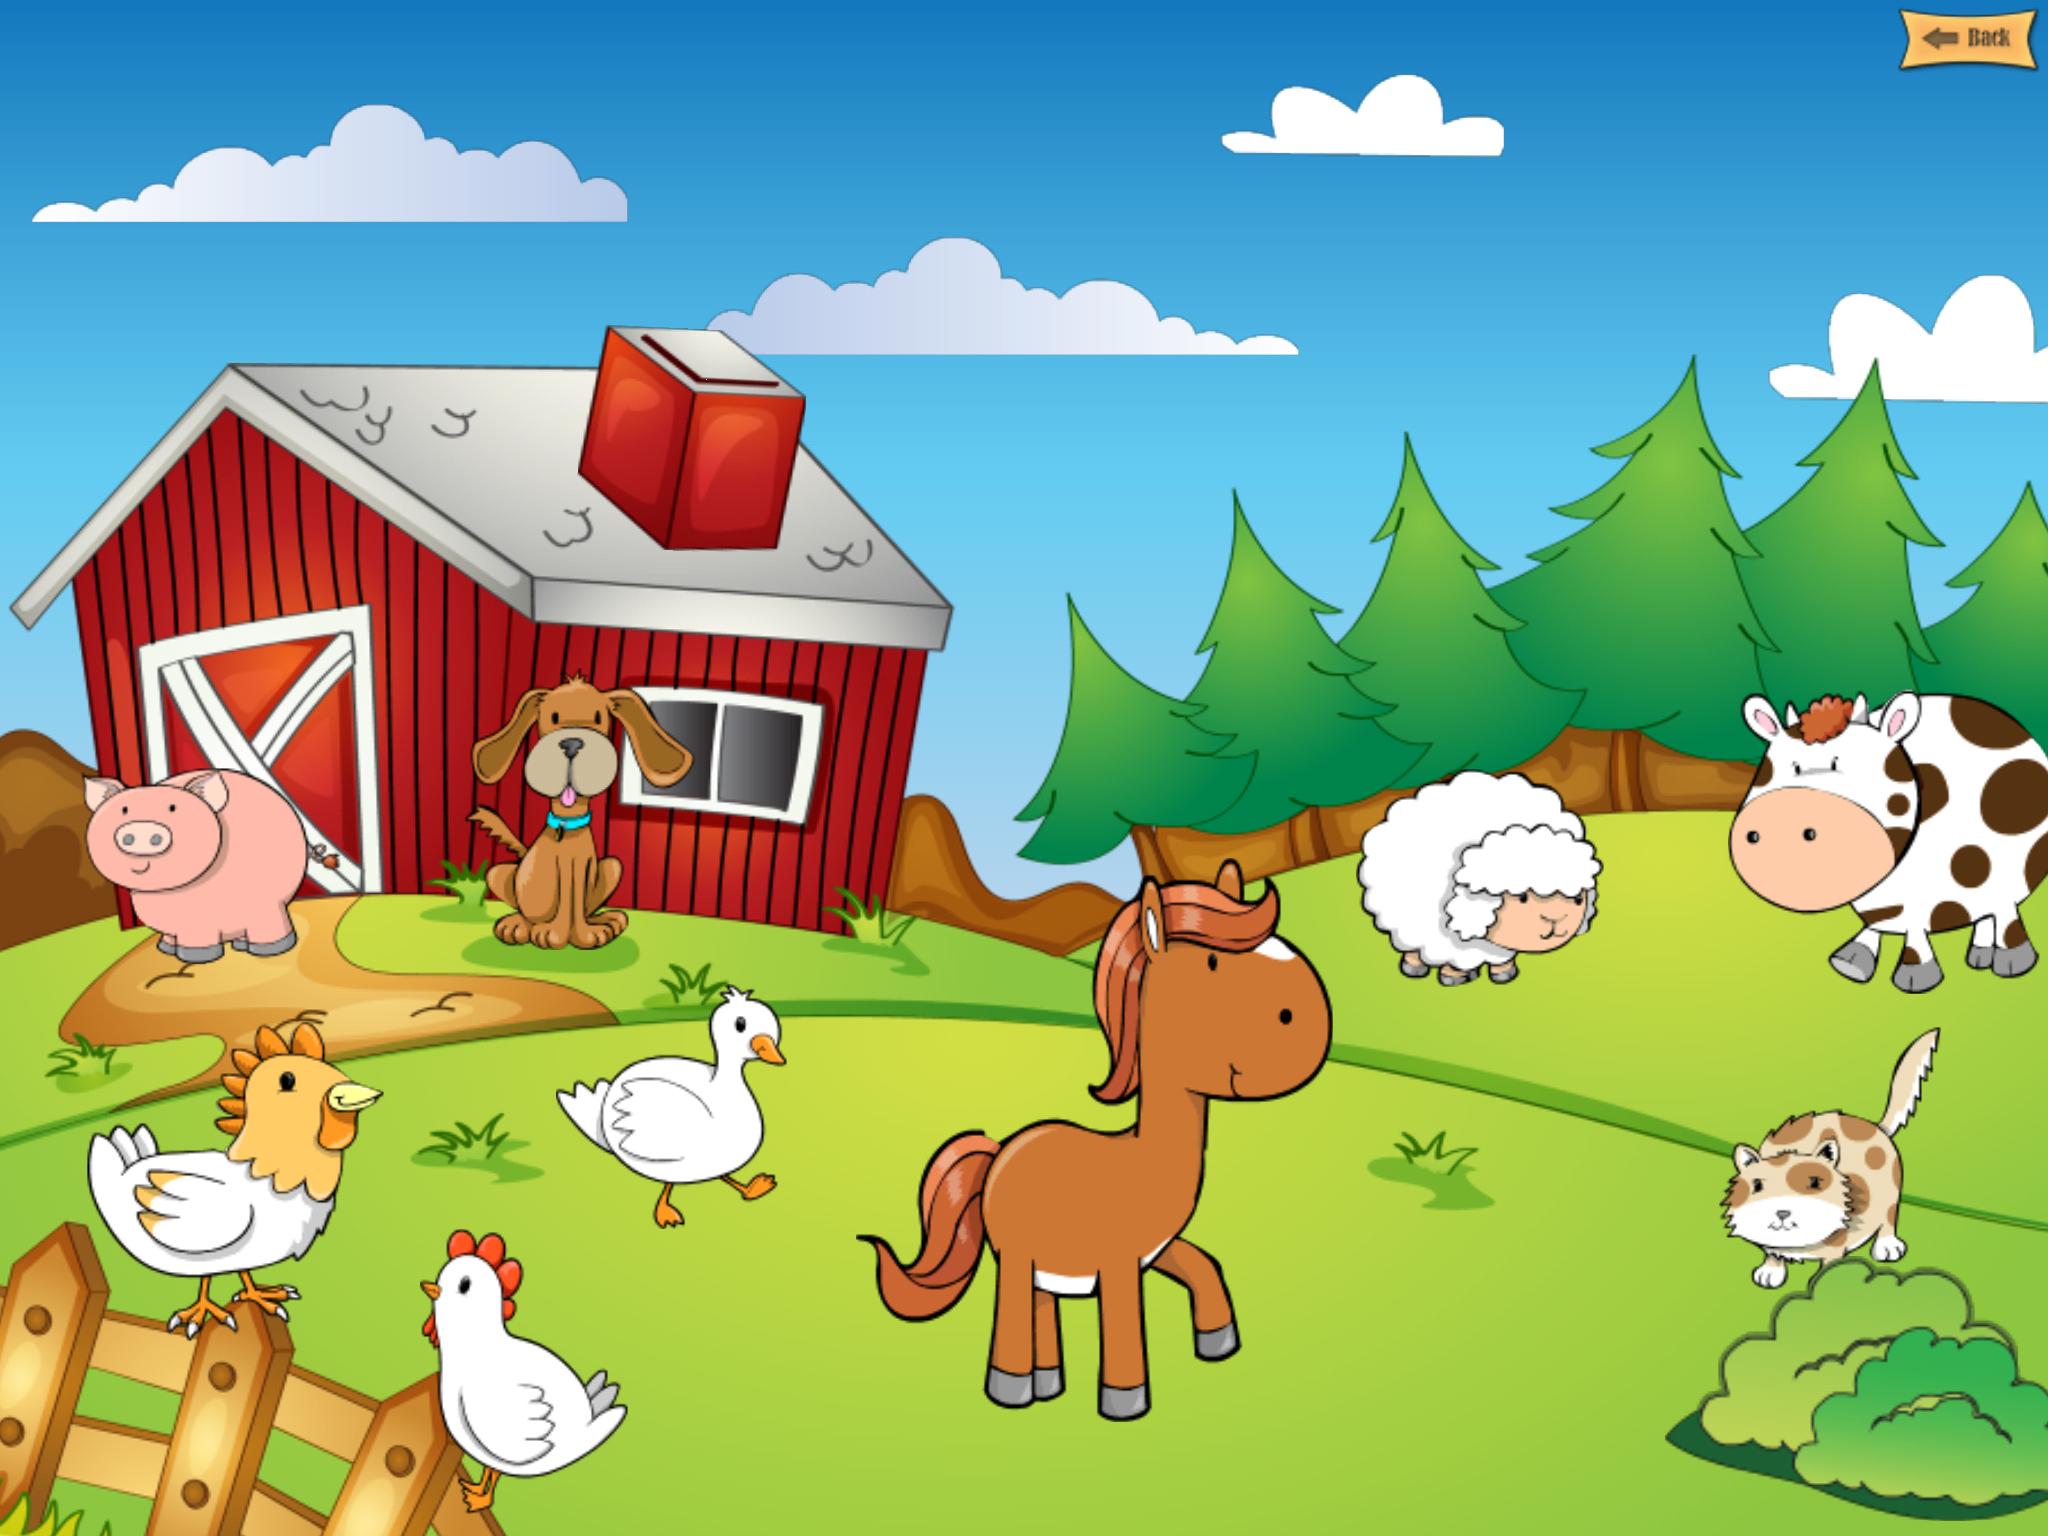 Resultado de imagen para farm scene wallpaper for kids fattoria